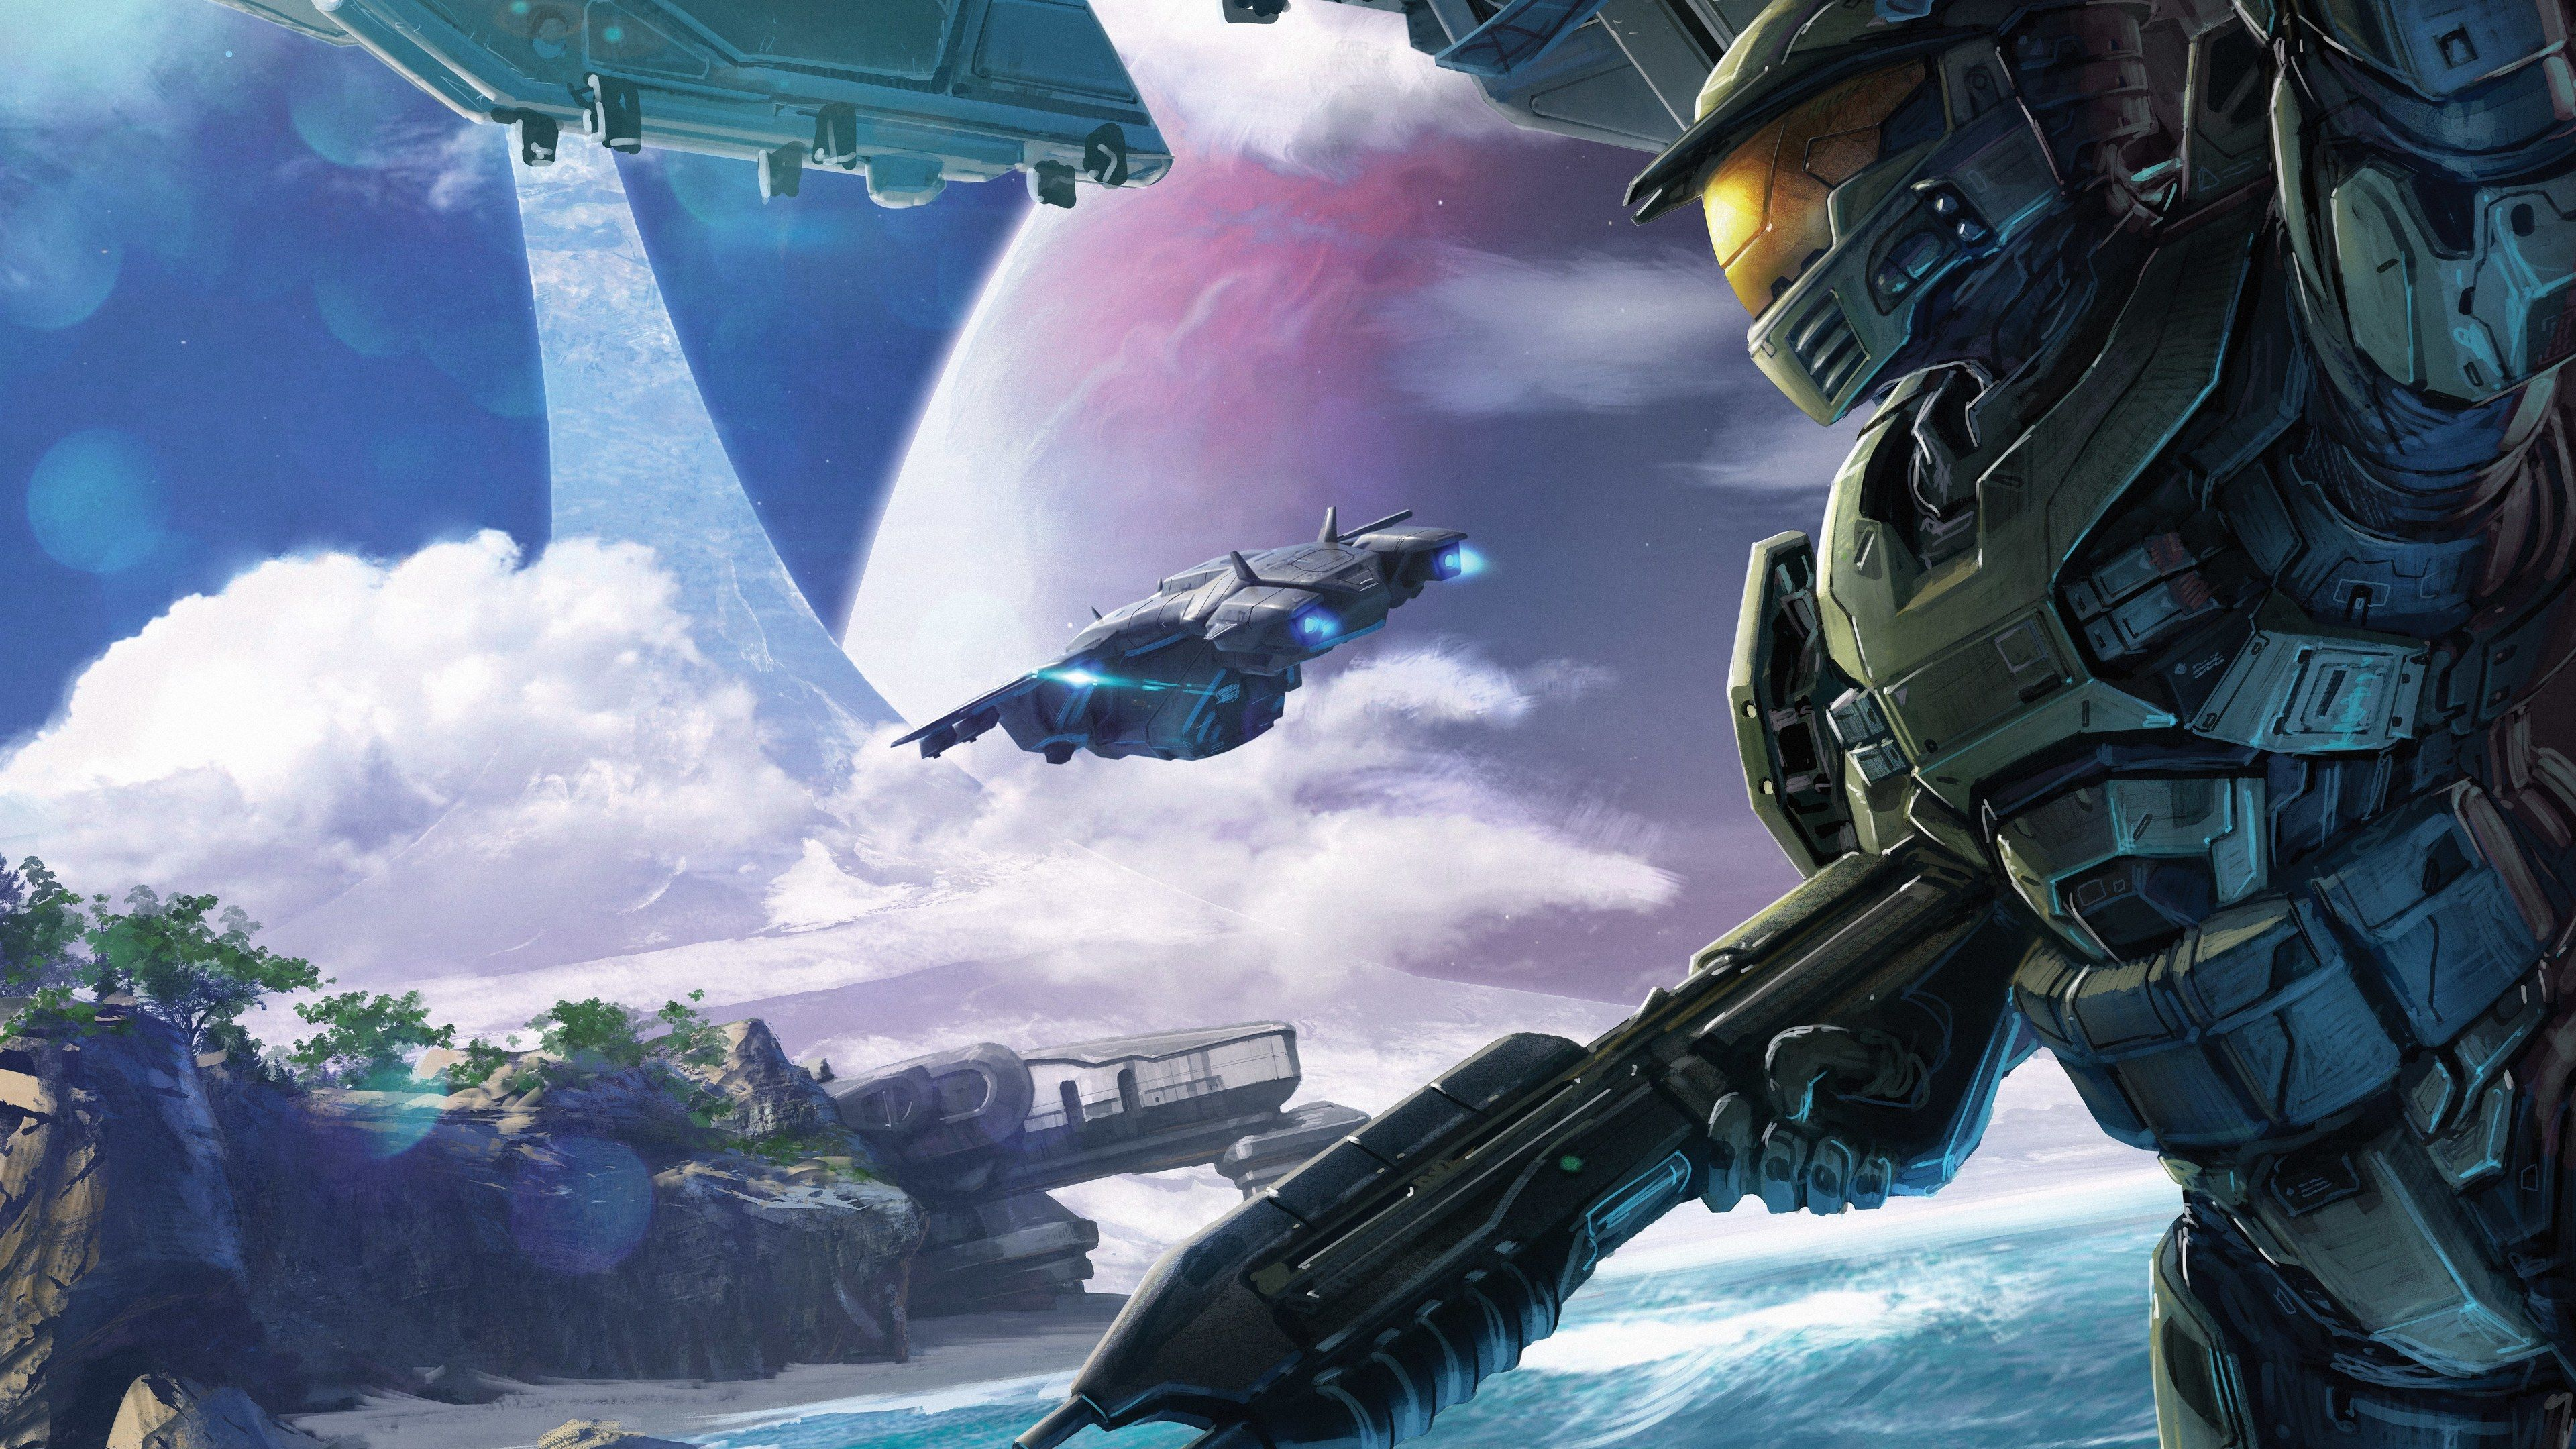 Halo Conflict Artwork 5k Xbox Games Wallpapers Ps Games Wallpapers Poster Wallpapers Pc Games Wallpapers Hd Wallpapers Halo Wall Halo Halo Cosplay Halo Ce